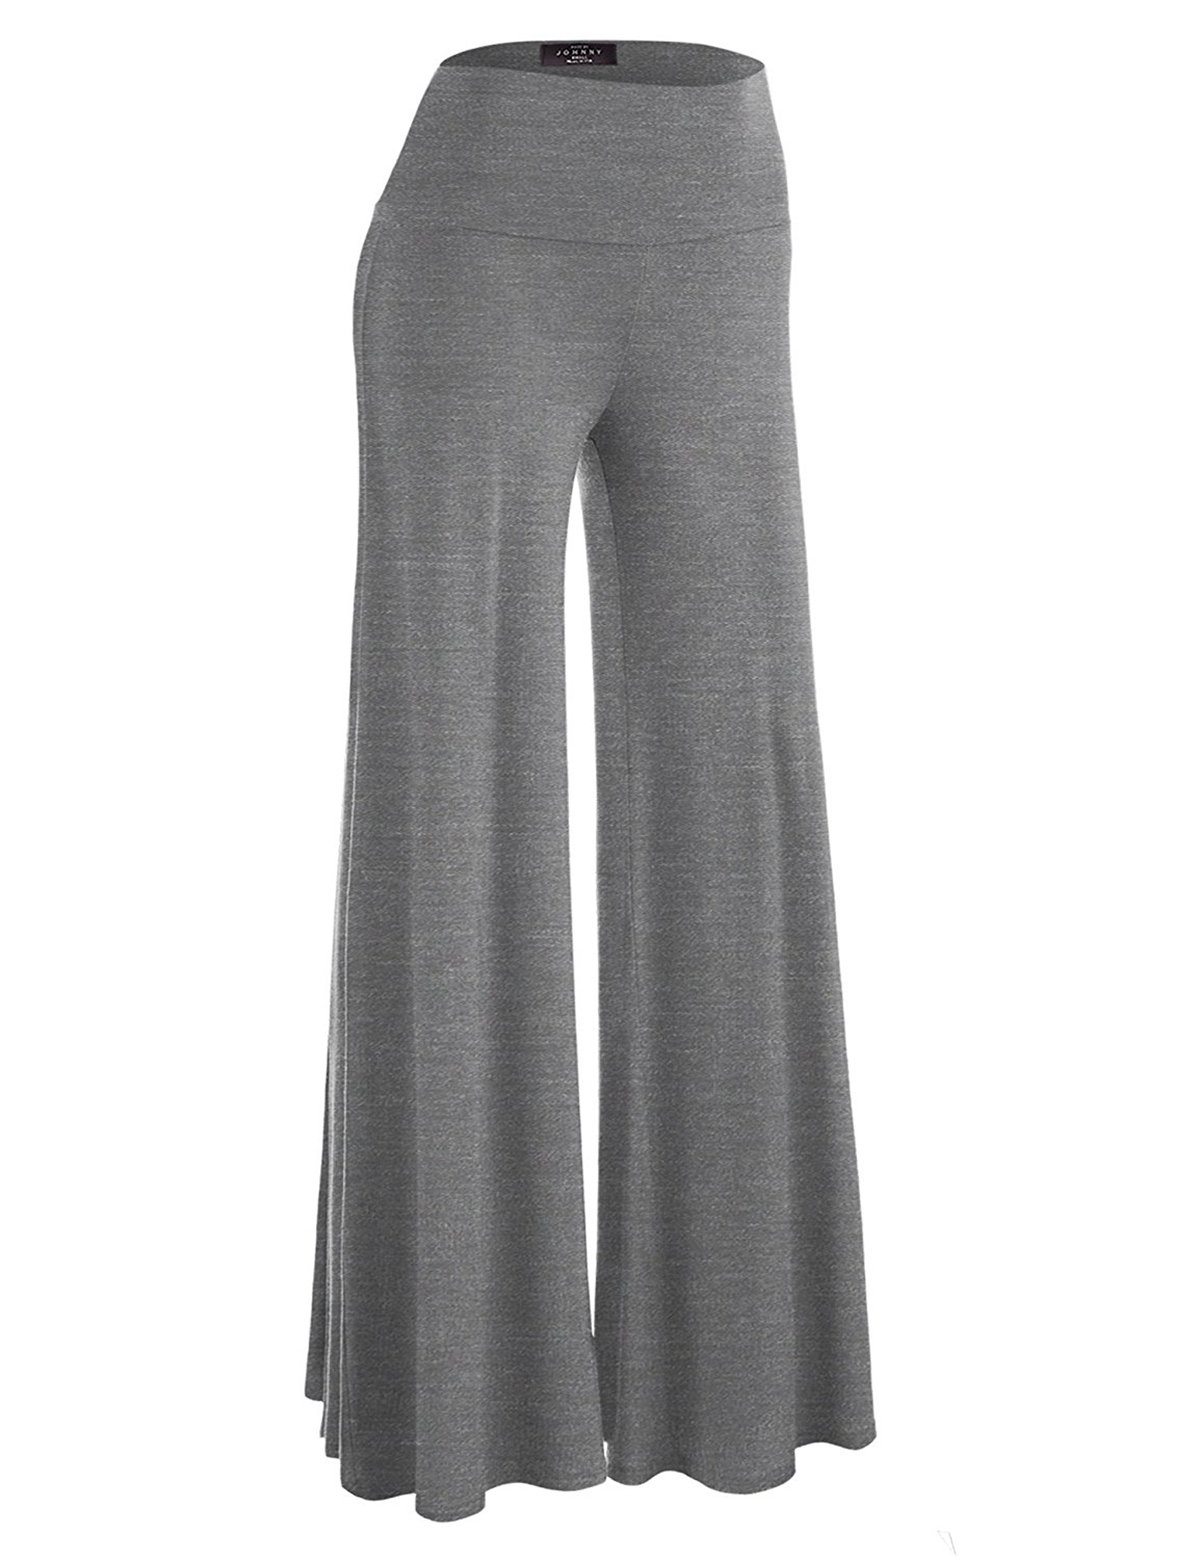 OMONSIM Women Classic Soft Chic Wide Leg Palazzo Pants (XX-Large, Grey)